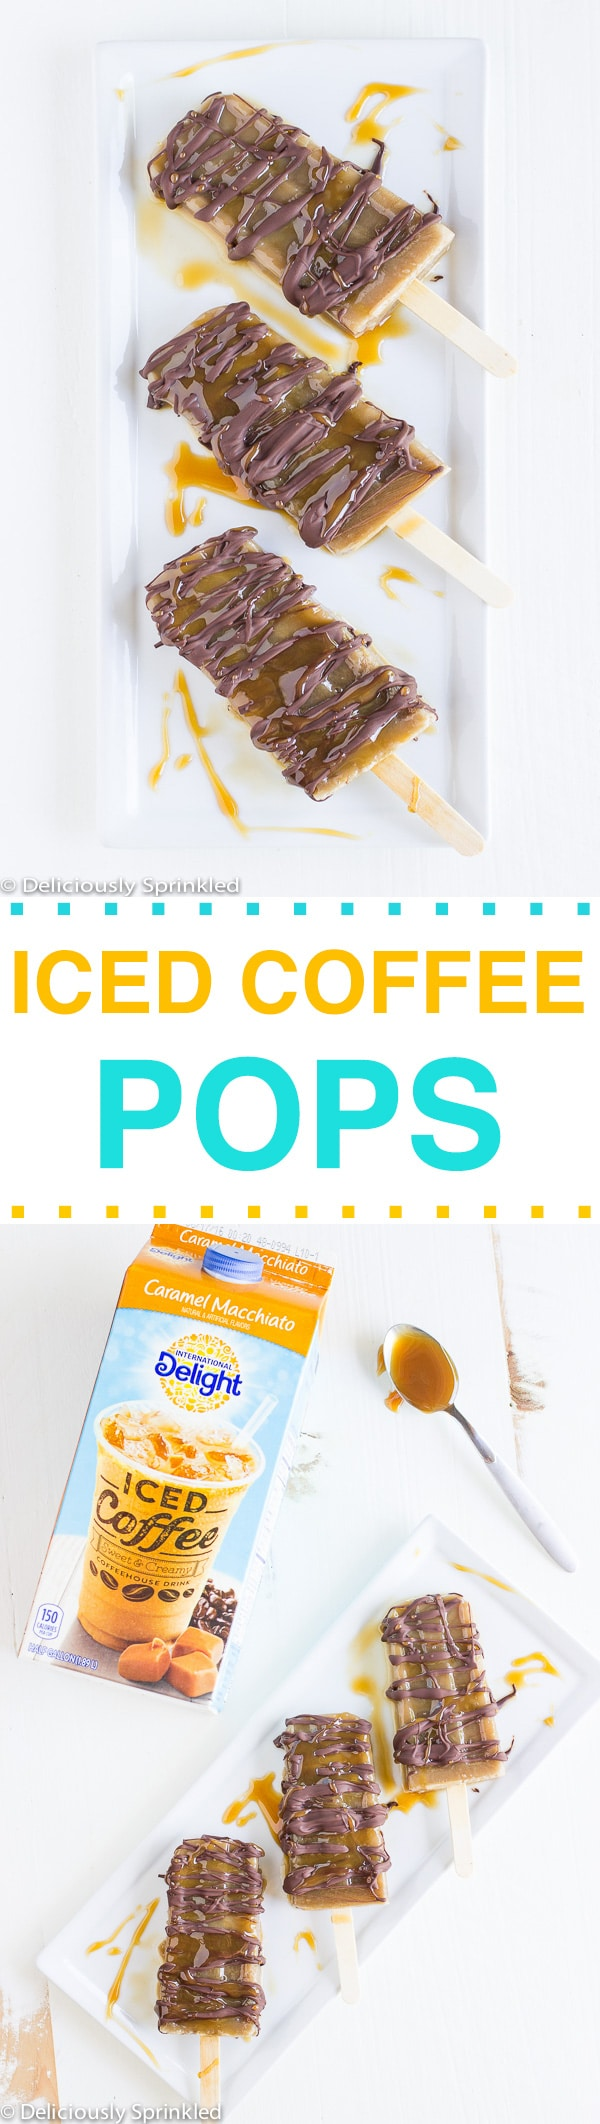 ICED-COFFEE-POPSICLE-RECIPE